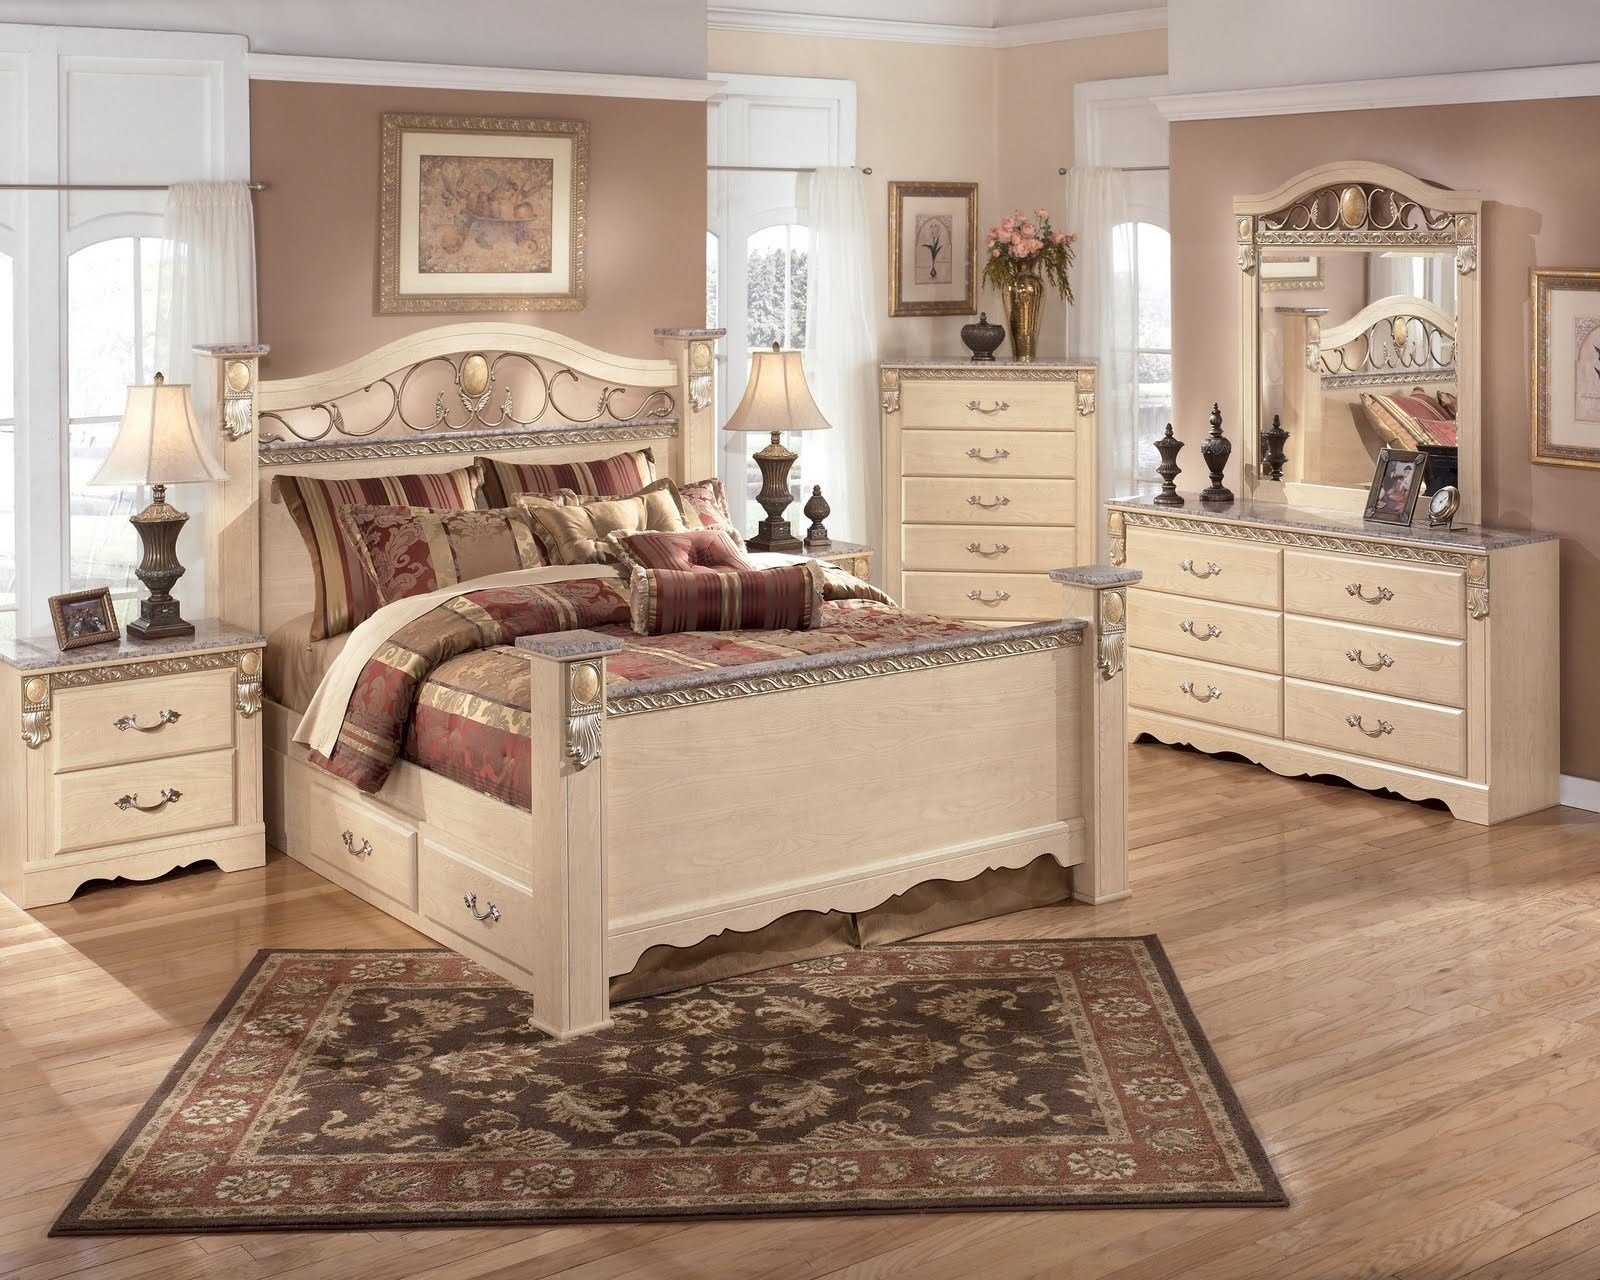 Best About Us Royal Furniture Outlet With Pictures